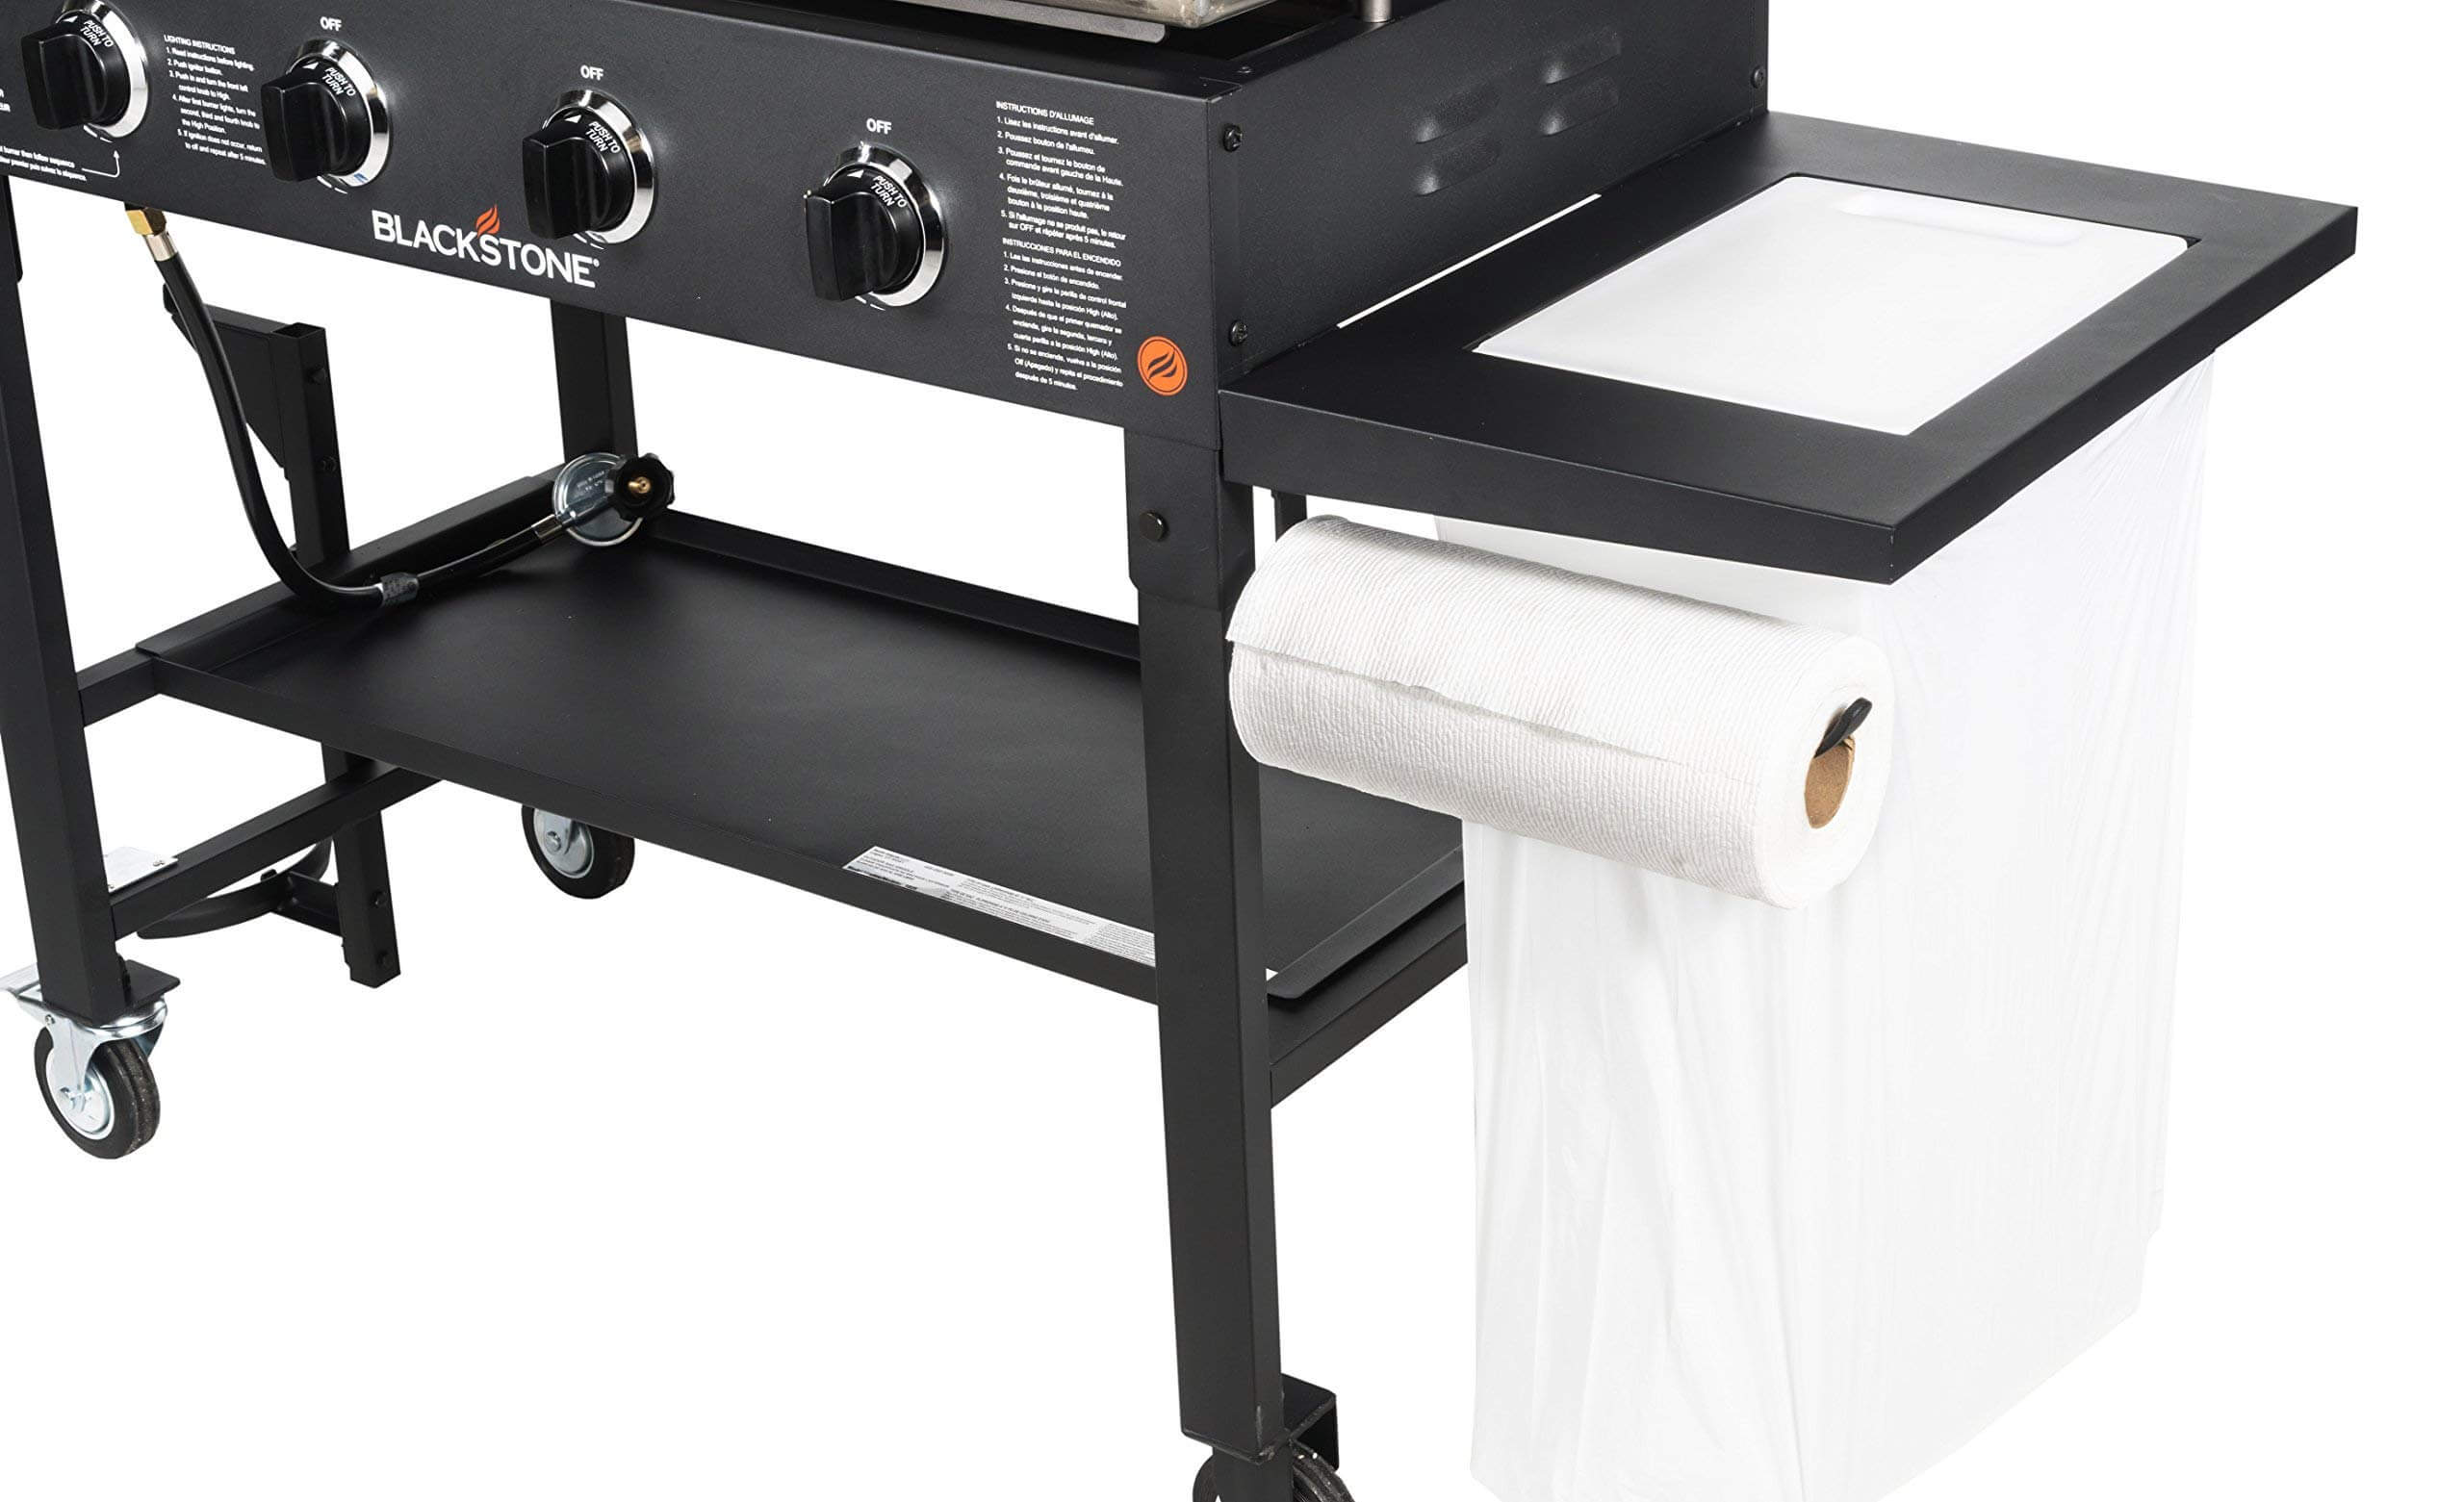 best flat top grill, best gas griddle, best blackstone griddle, griddle grill combo, best grills to buy, best rated gas grills